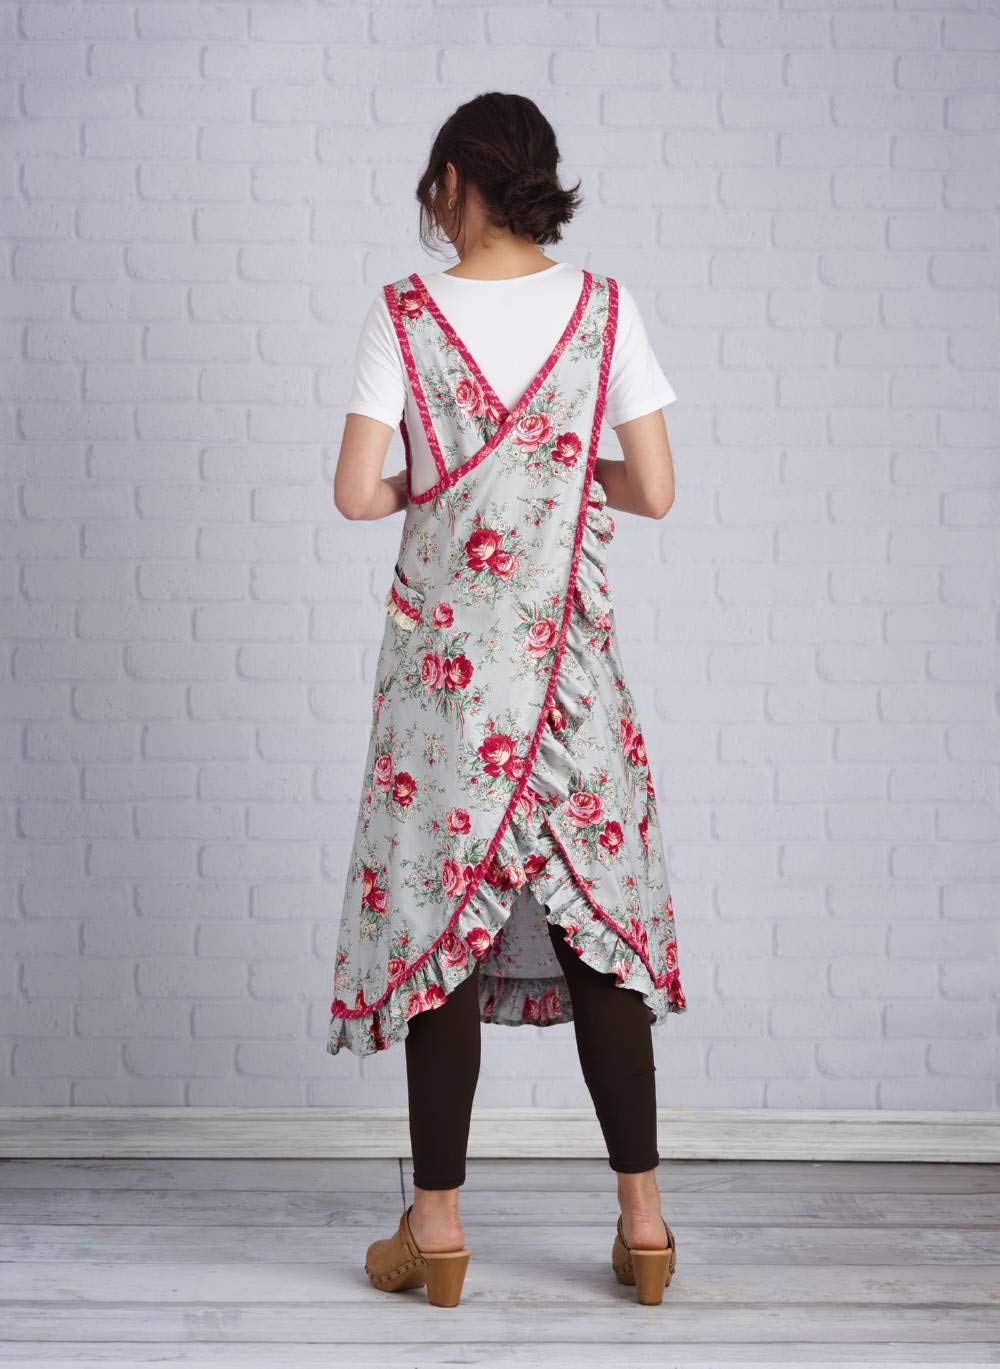 Simplicity Sewing Pattern S8904 Misses' Wraparound Apron, Size A (XS-XL) by Simplicity